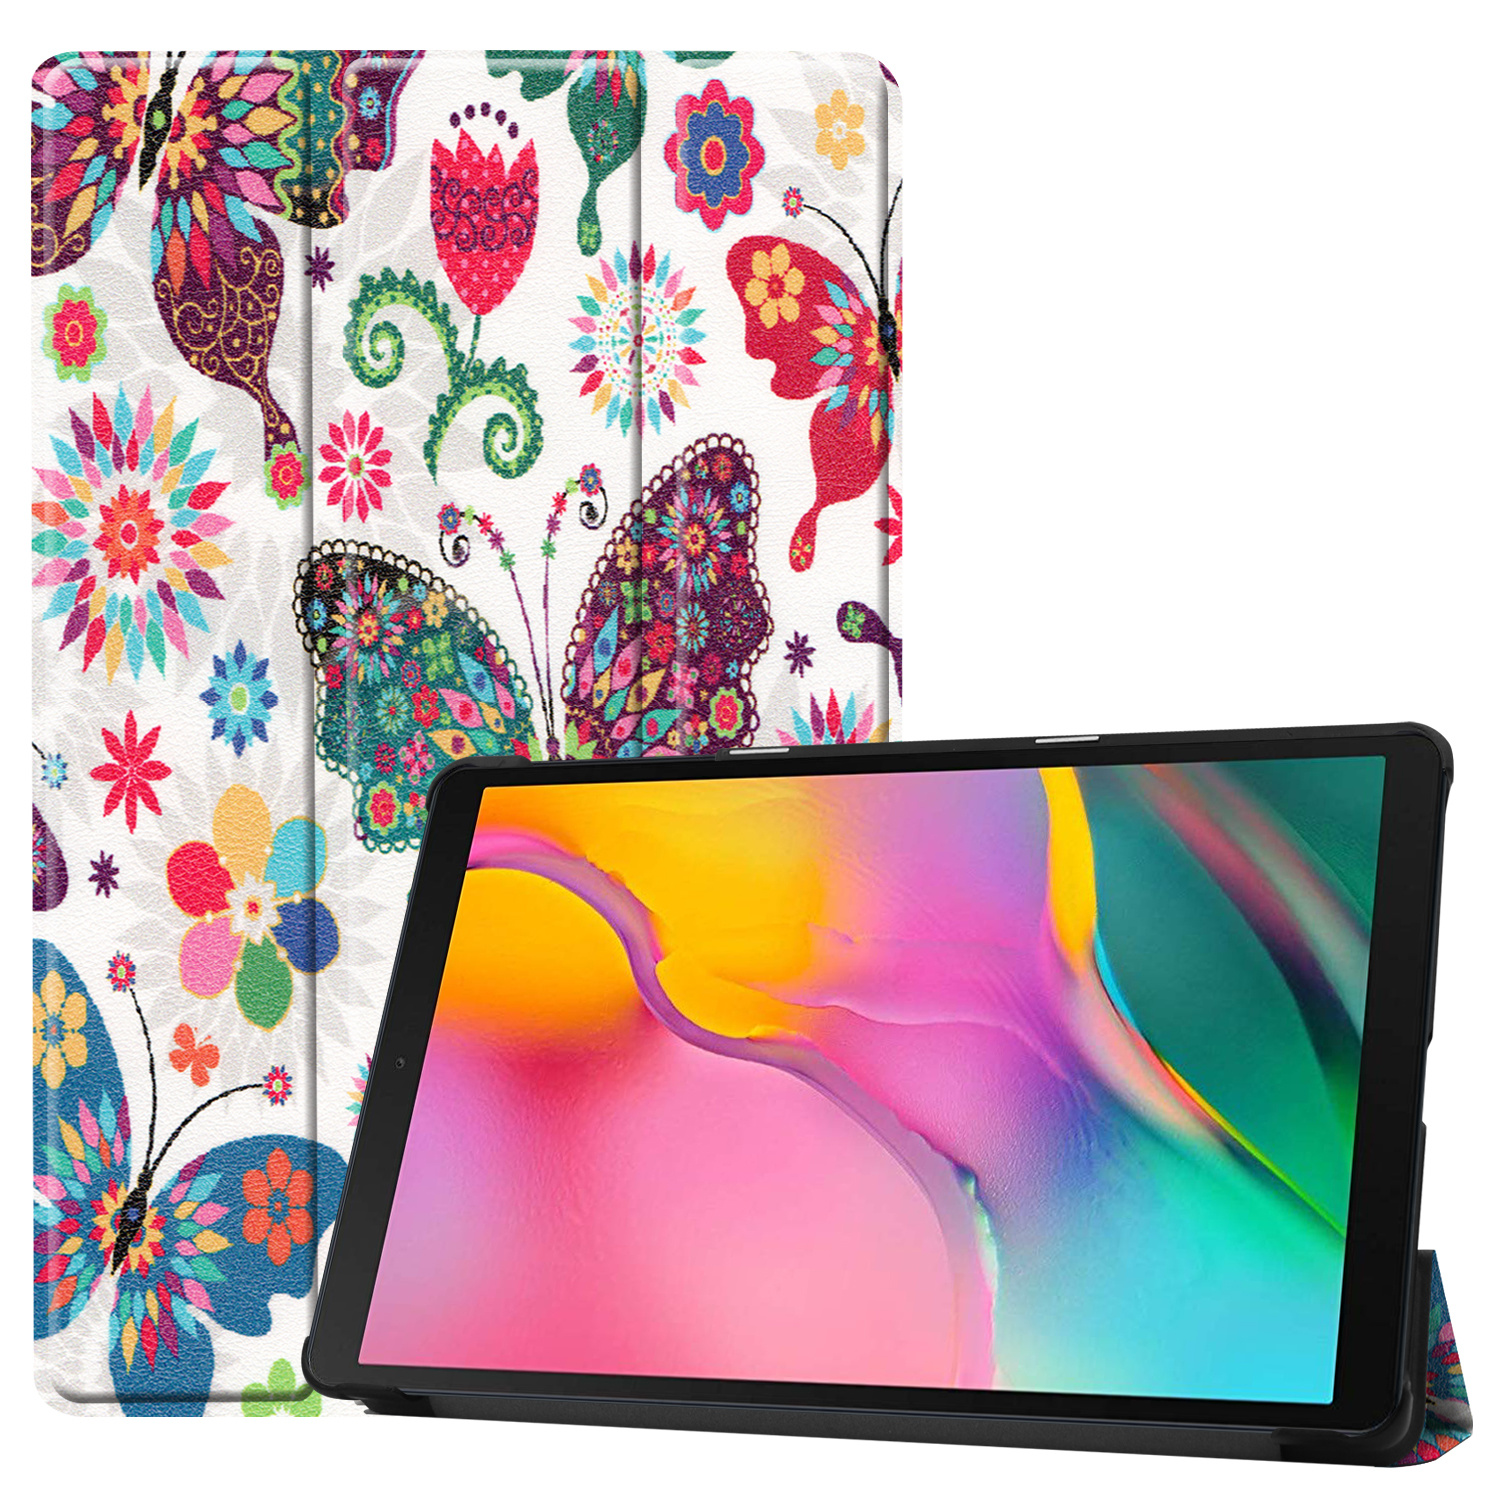 3-Vouw cover hoes Don't Touch voor de Samsung Galaxy Tab A 10.1 inch Vlinders